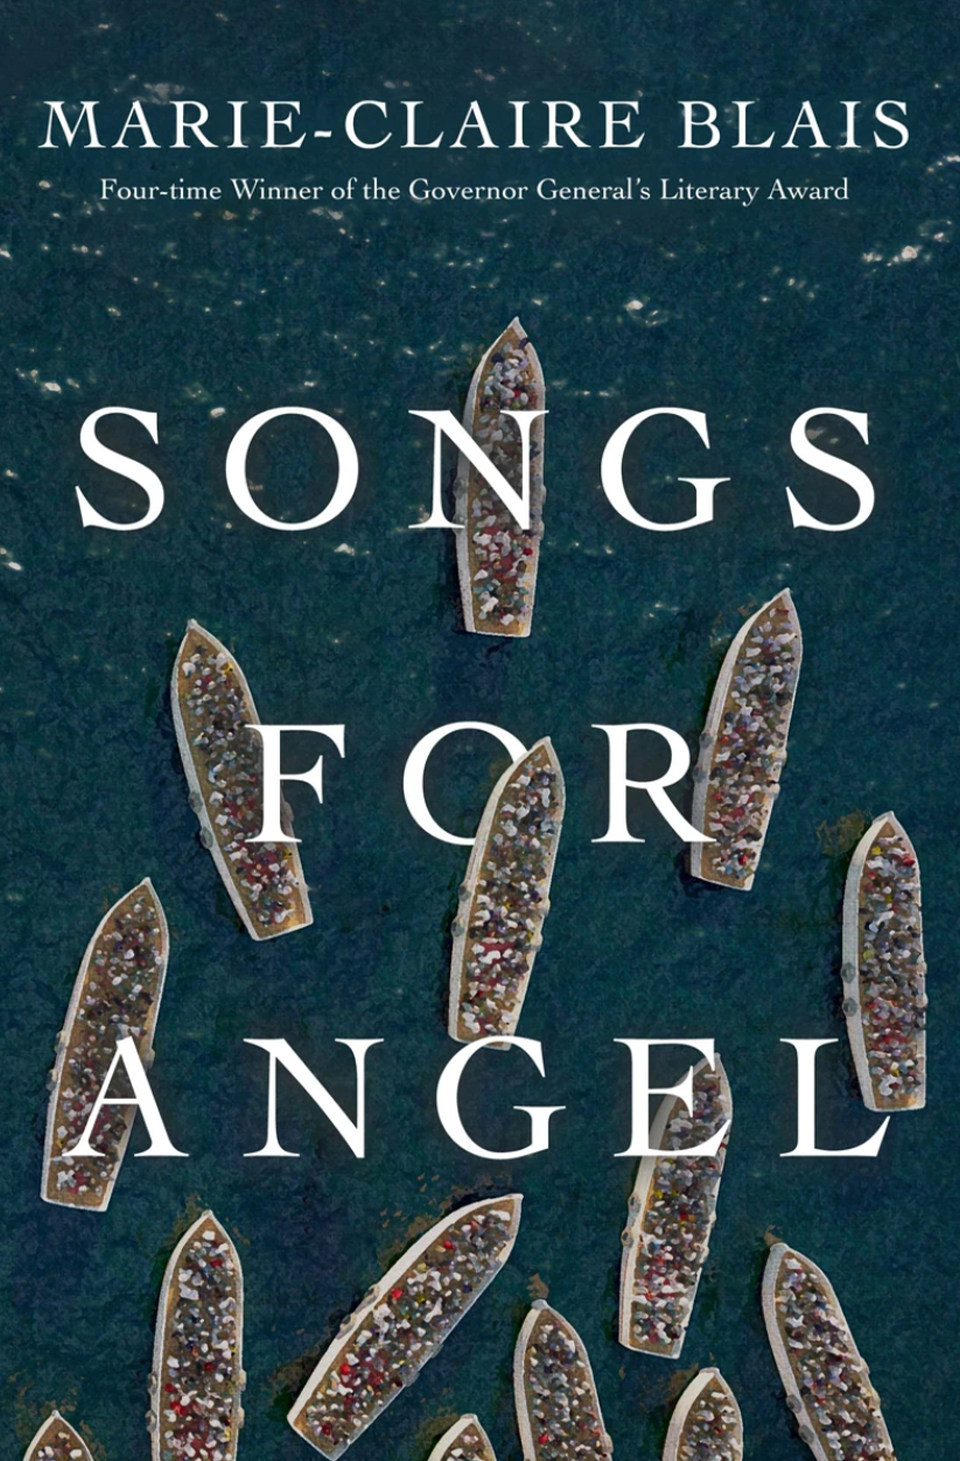 Songs for Angel by Marie-Claire Blais